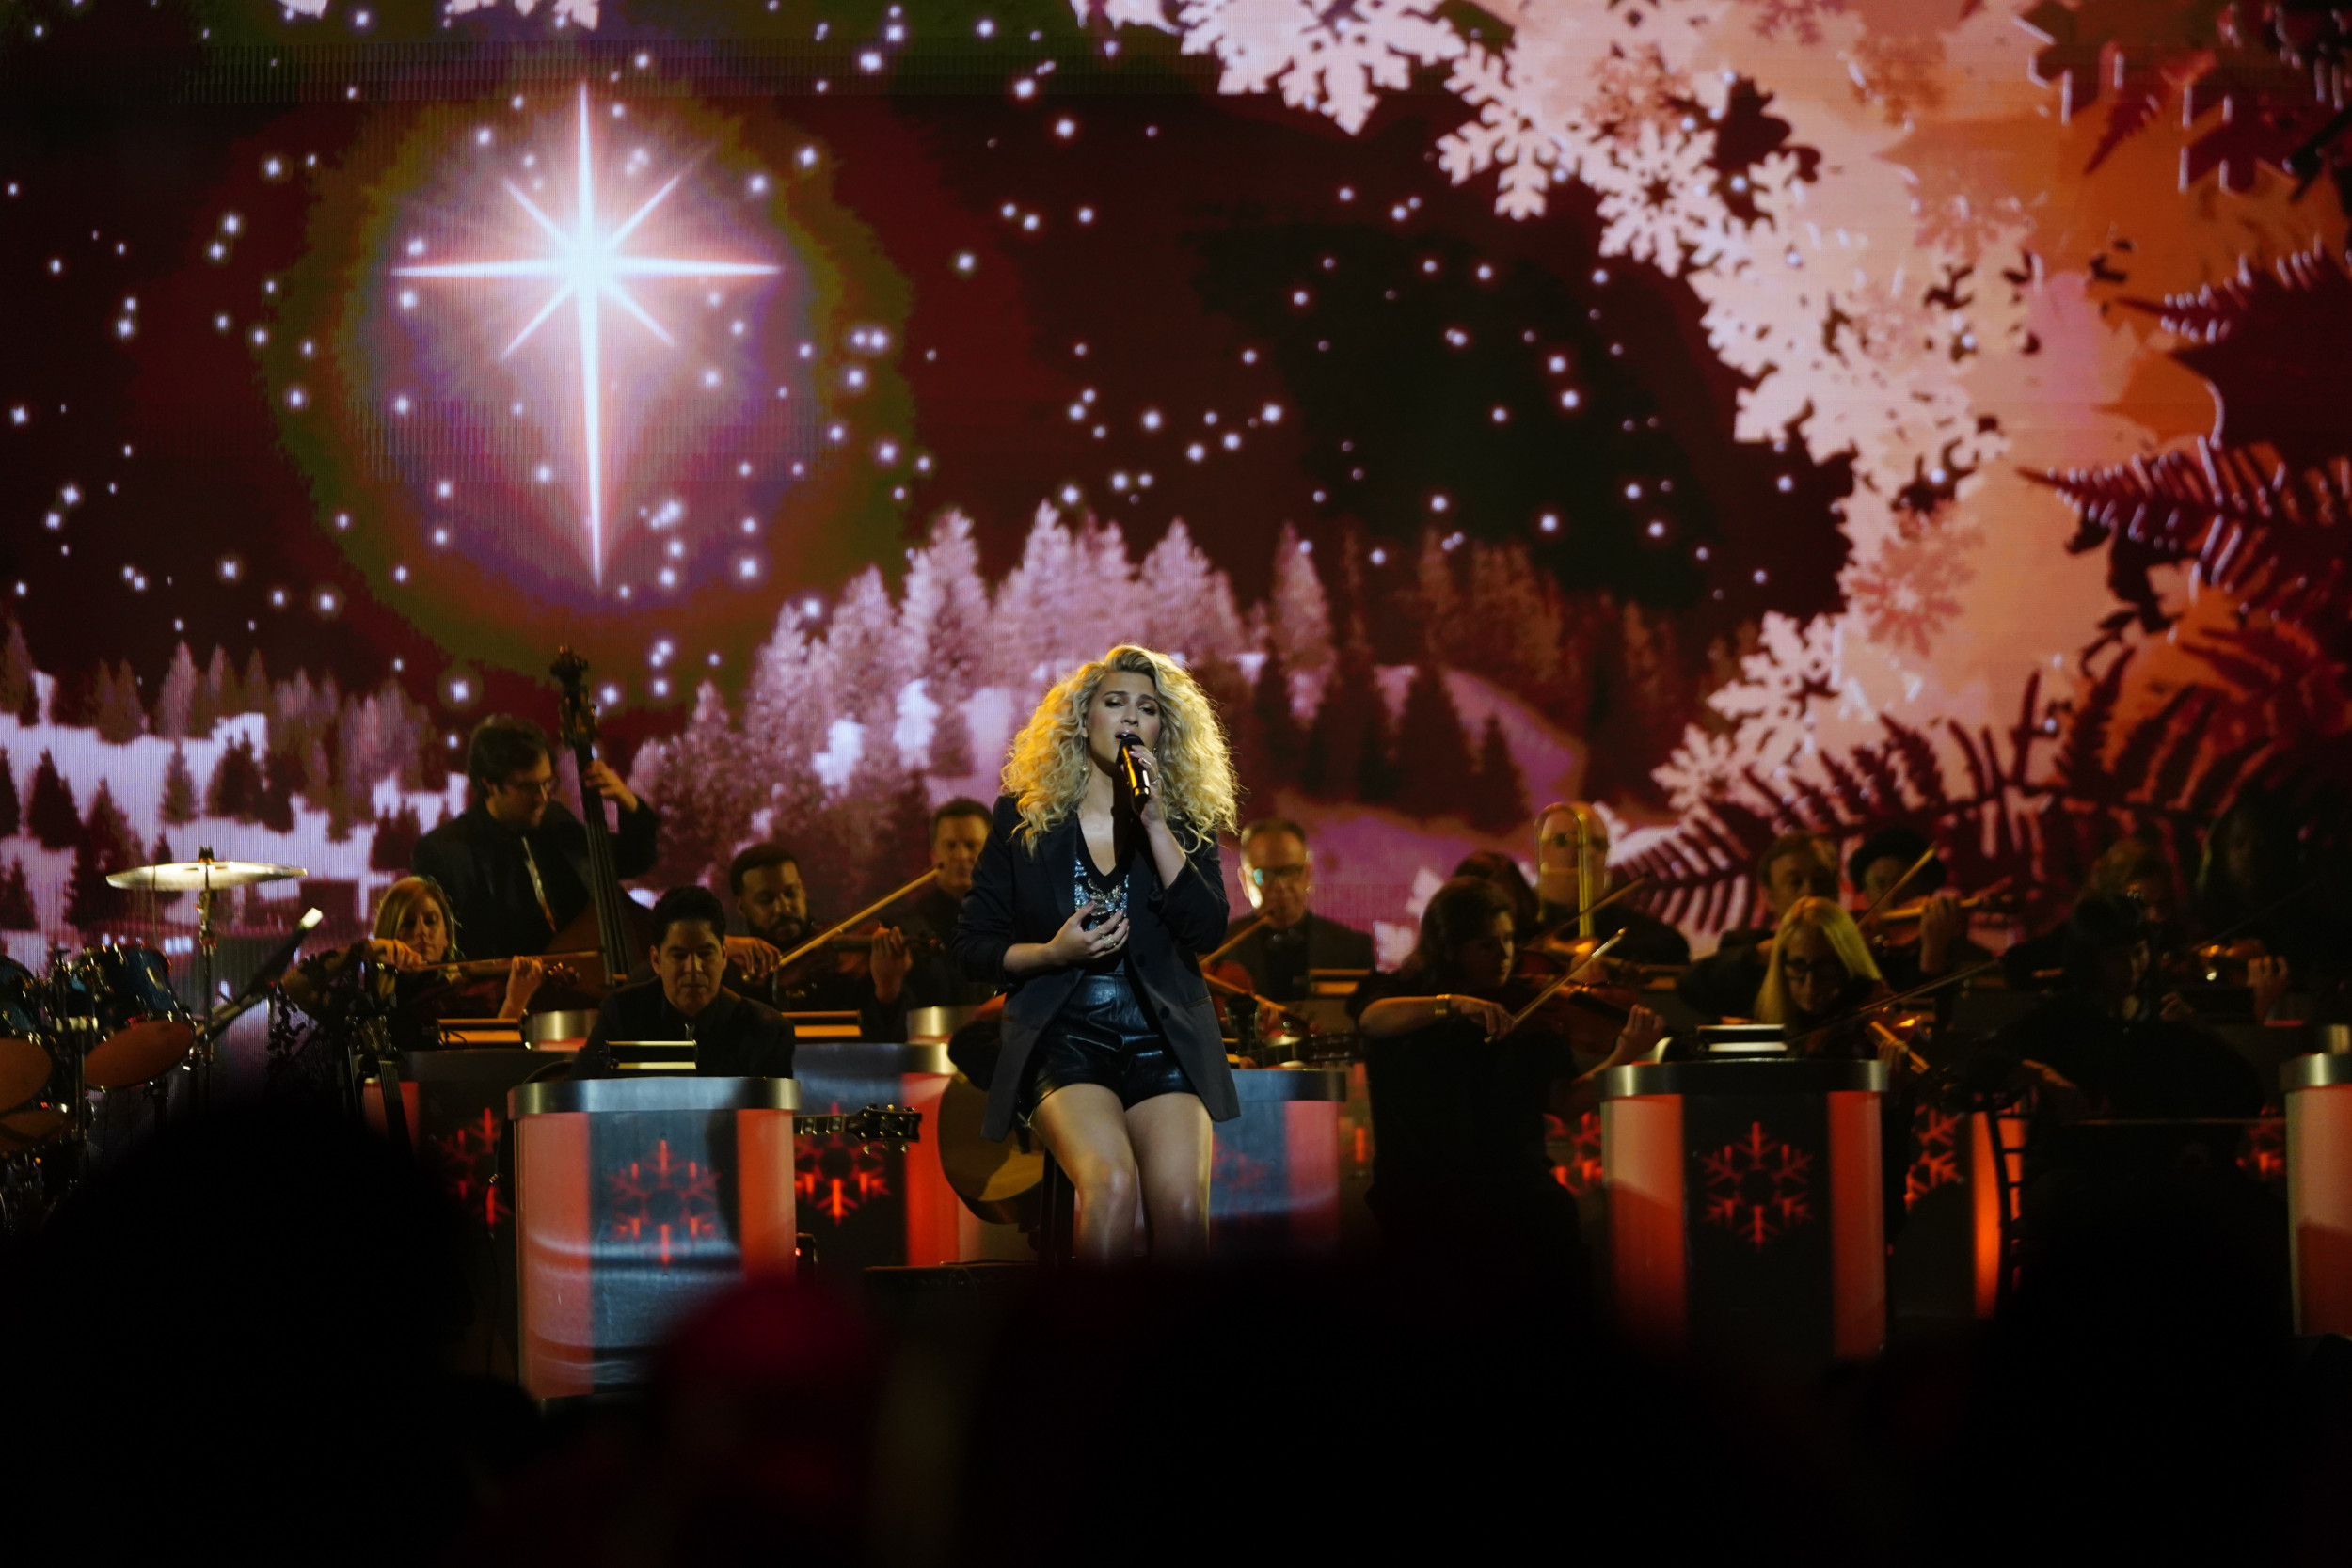 Cma Christmas 2020 Artist List How to Watch 'CMA Country Christmas,' Who Is Performing and